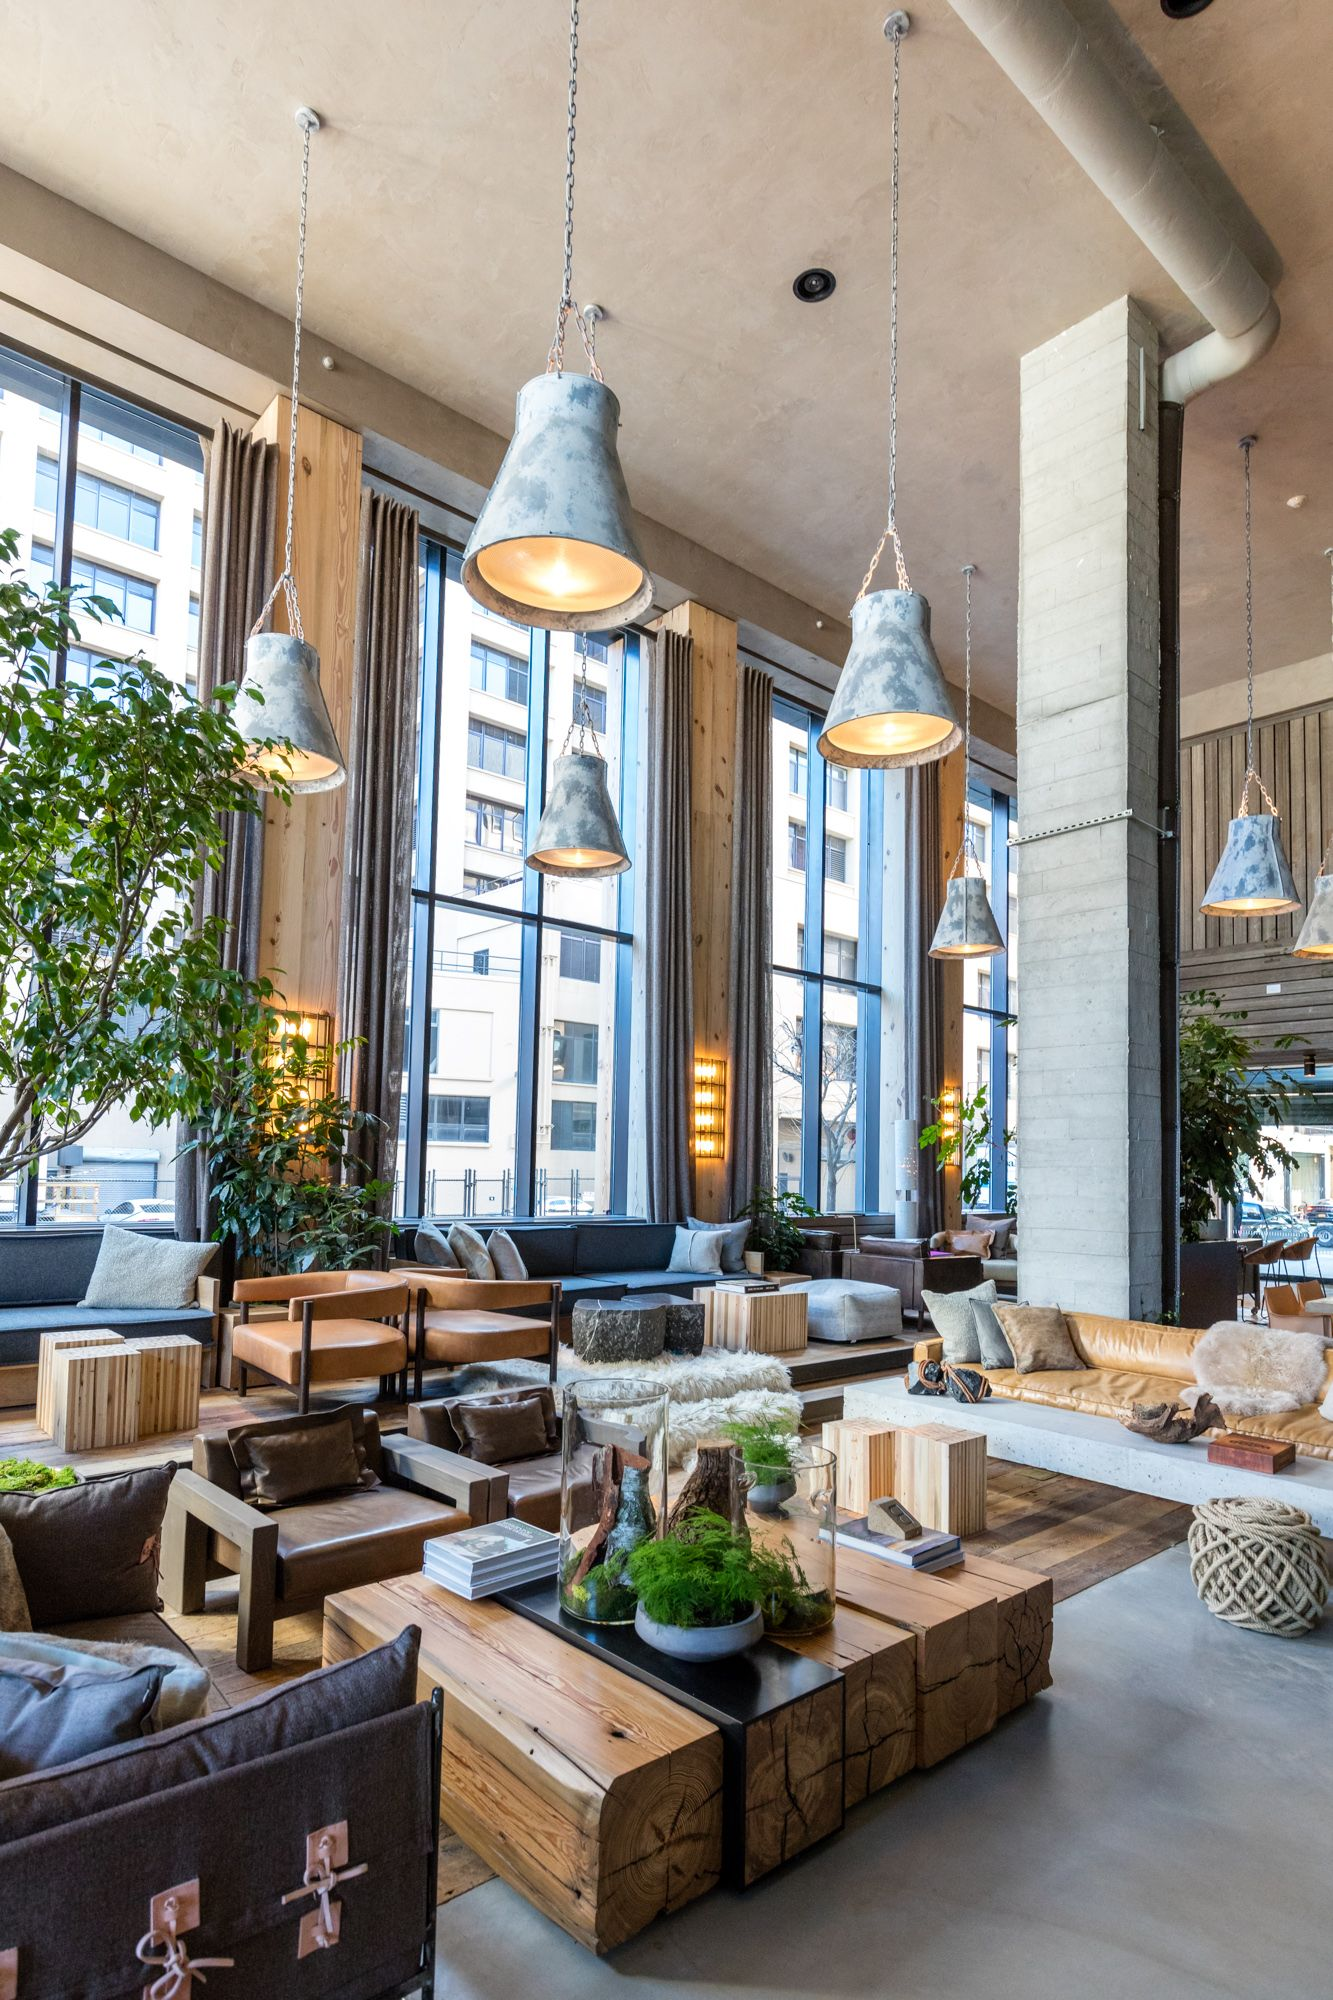 Luxury Interior Design: In Brooklyn Bridge Park, An Eco-friendly Hotel Sprouts On